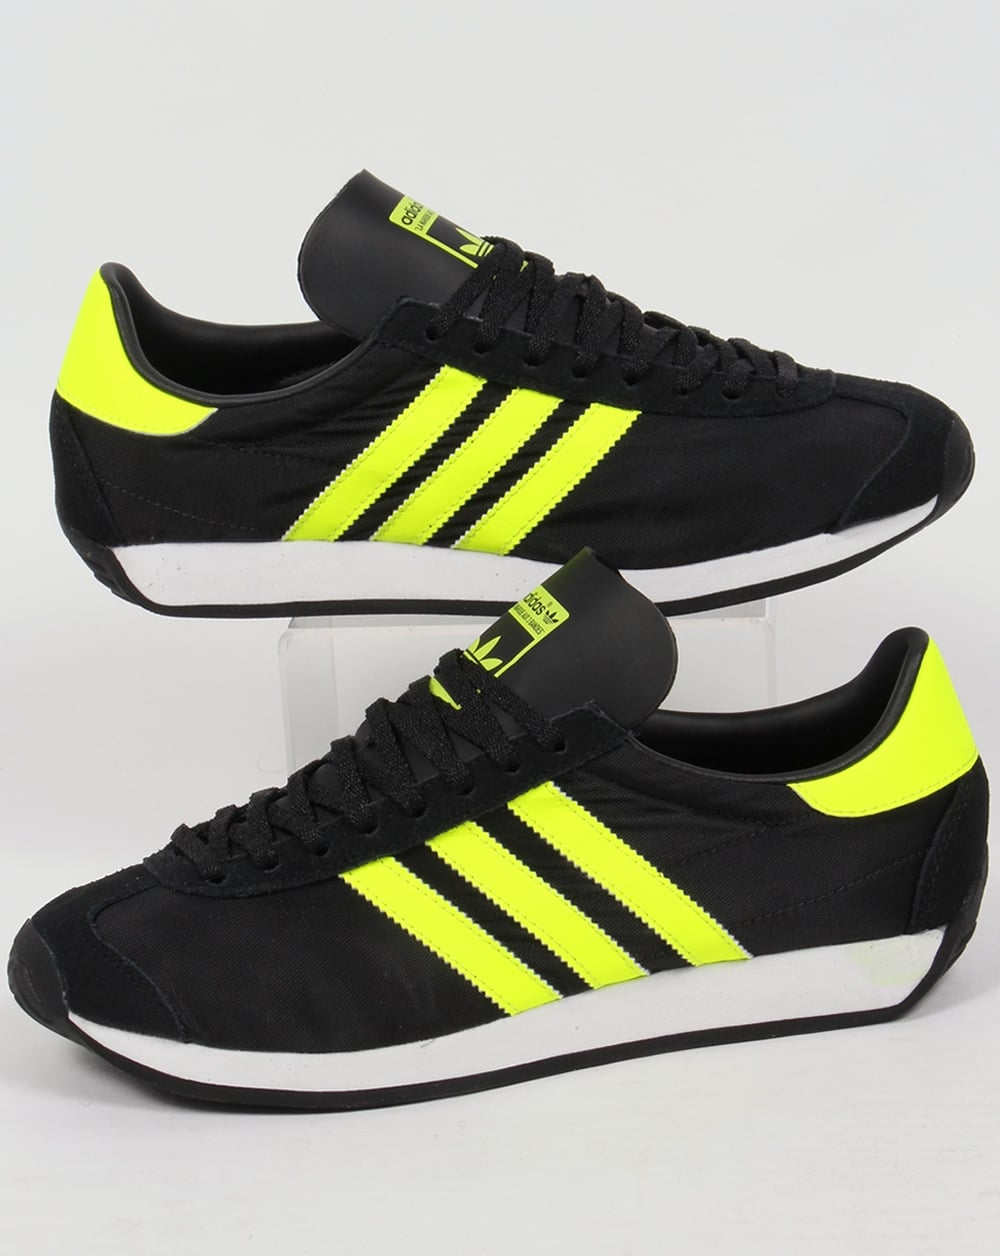 timeless design 0dbc0 7a42a adidas Trainers Adidas Country OG Trainers Black Solar Yellow